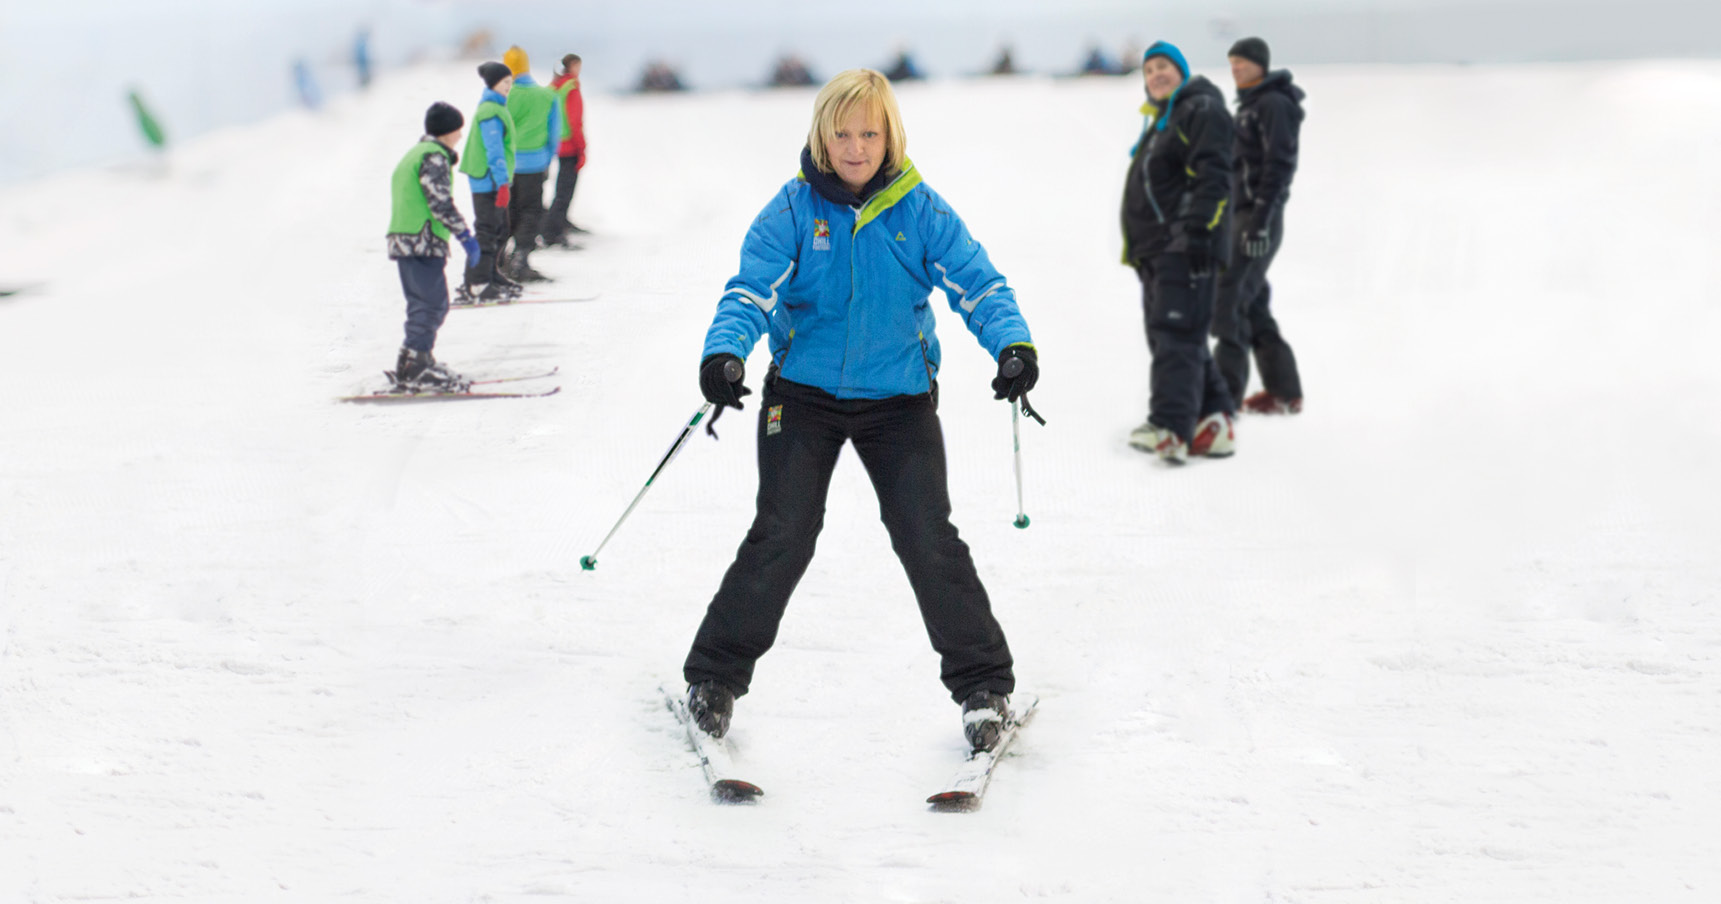 Learning to ski at 40? Why it's never too late to learn a new skill